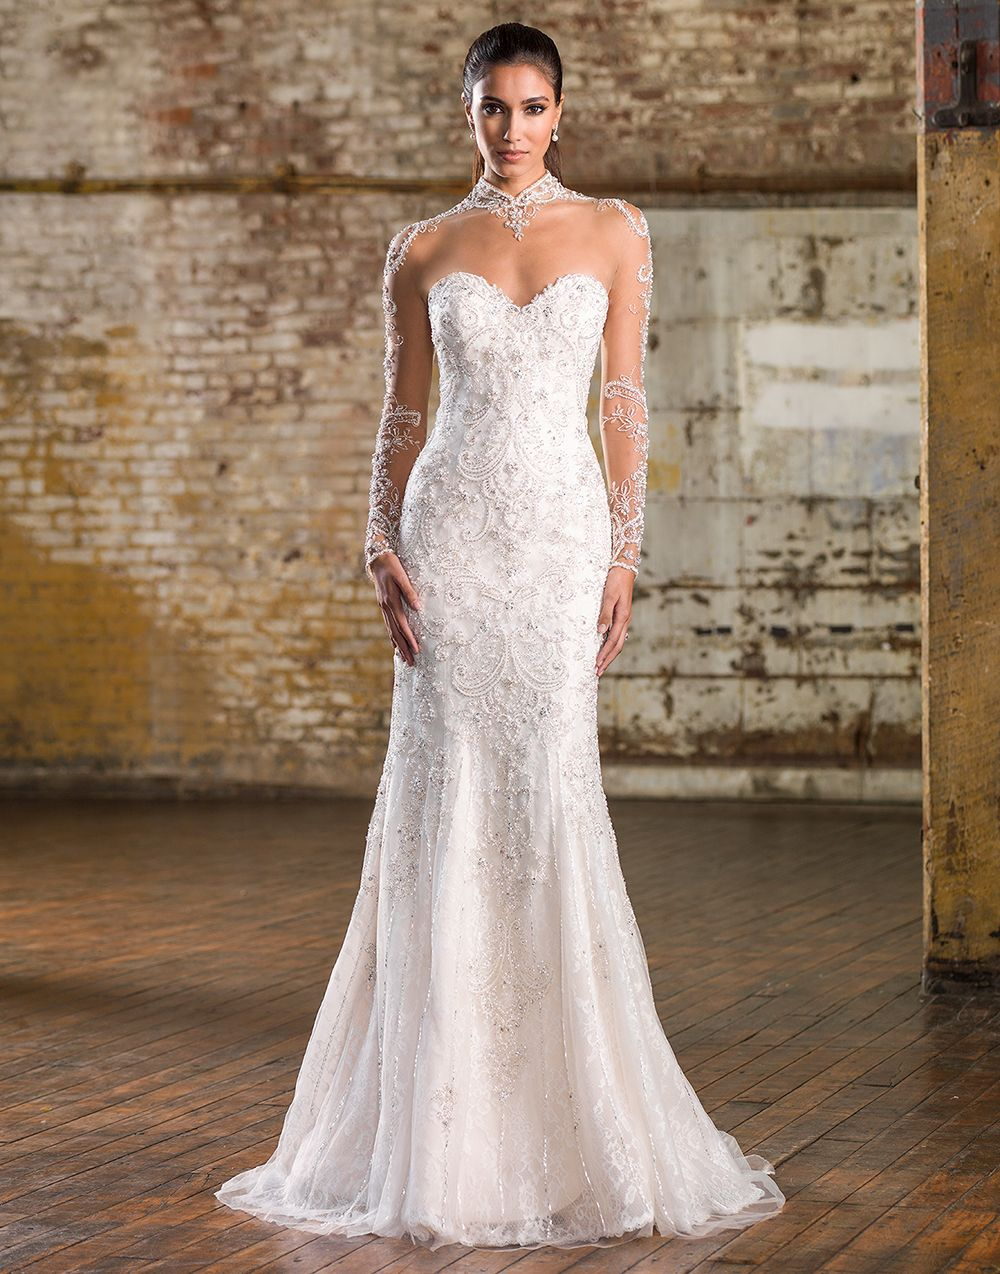 Signature Wedding Dresses Style 9832 Beaded Illusion Tulle Mandarin Neckline Back And Sleeves Adorn This Allover